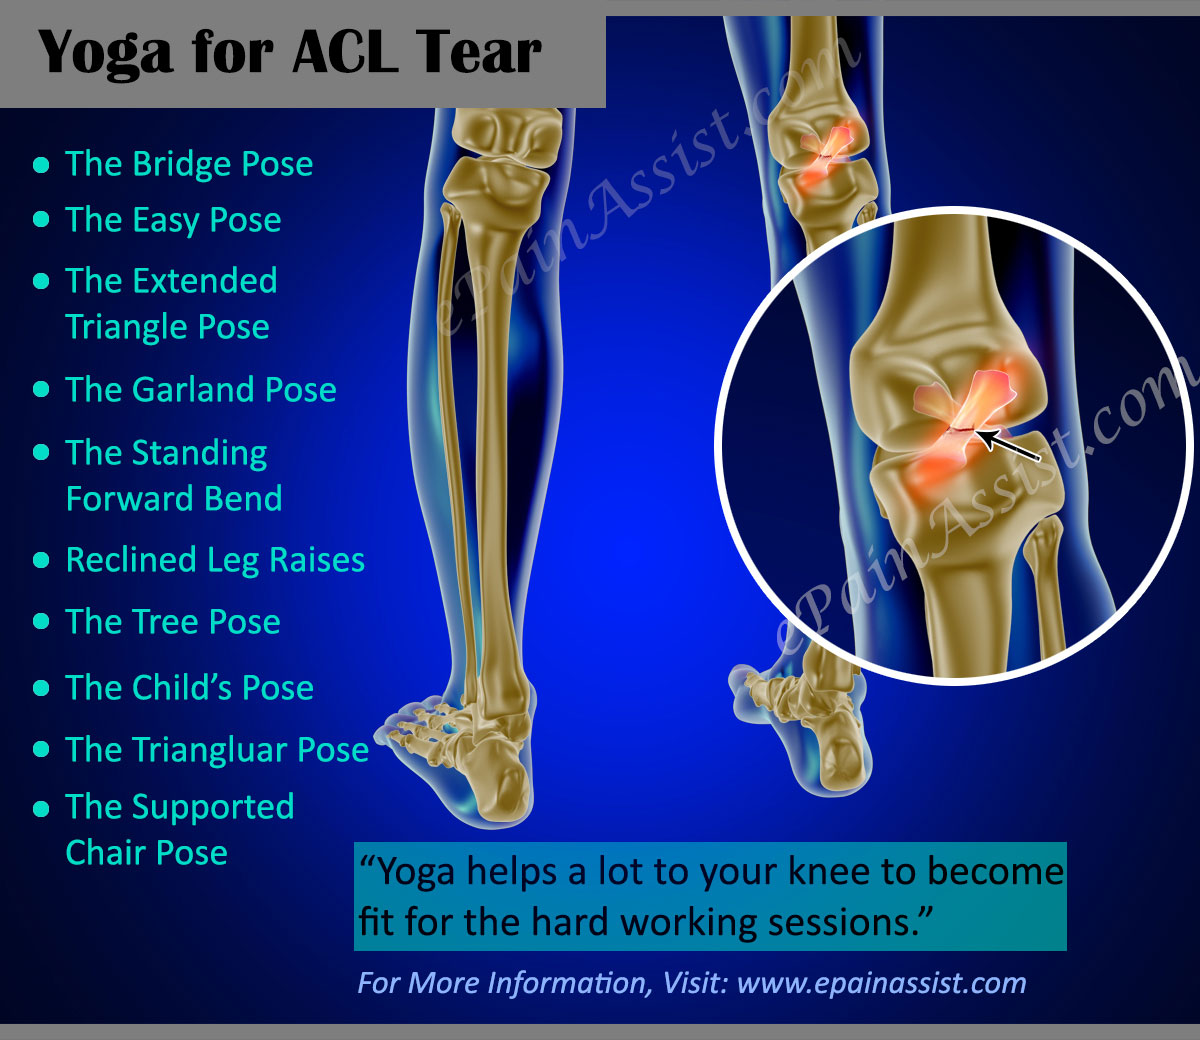 ACL Tear|Exercises|Yoga|Braces|Prognosis|Recovery|Prevention